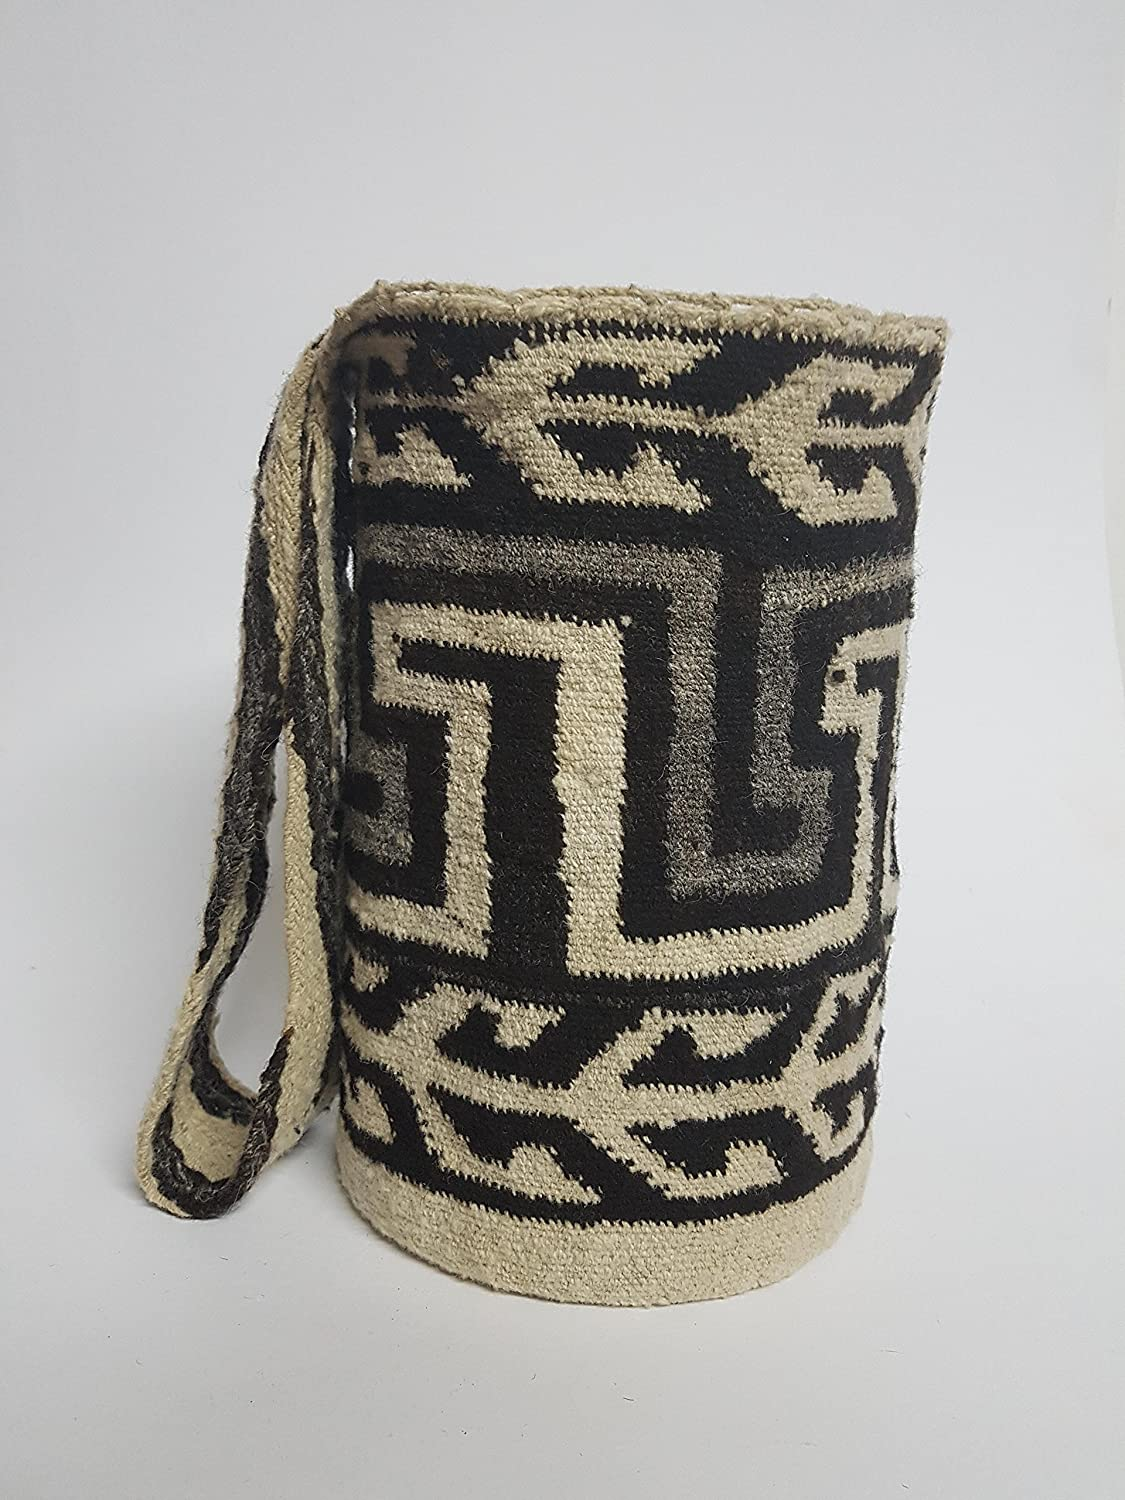 Amazon.com: Authentic Native Colombian Arhuaco handbag - Colombian mochila - Handmade and woven from sheep wool by women - Colombian mochila 320: Handmade